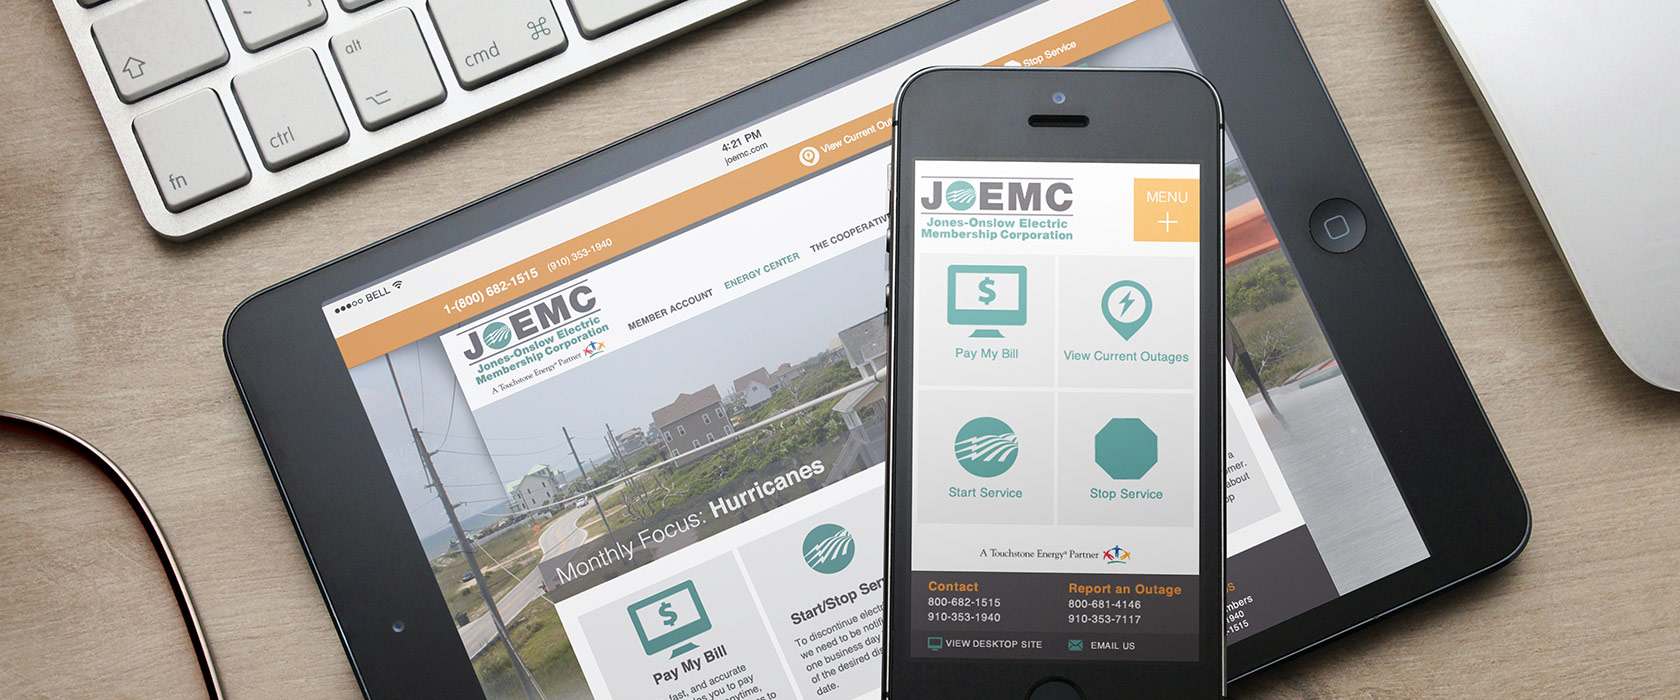 Jones Onslow Electric Membership Corporation Web Design